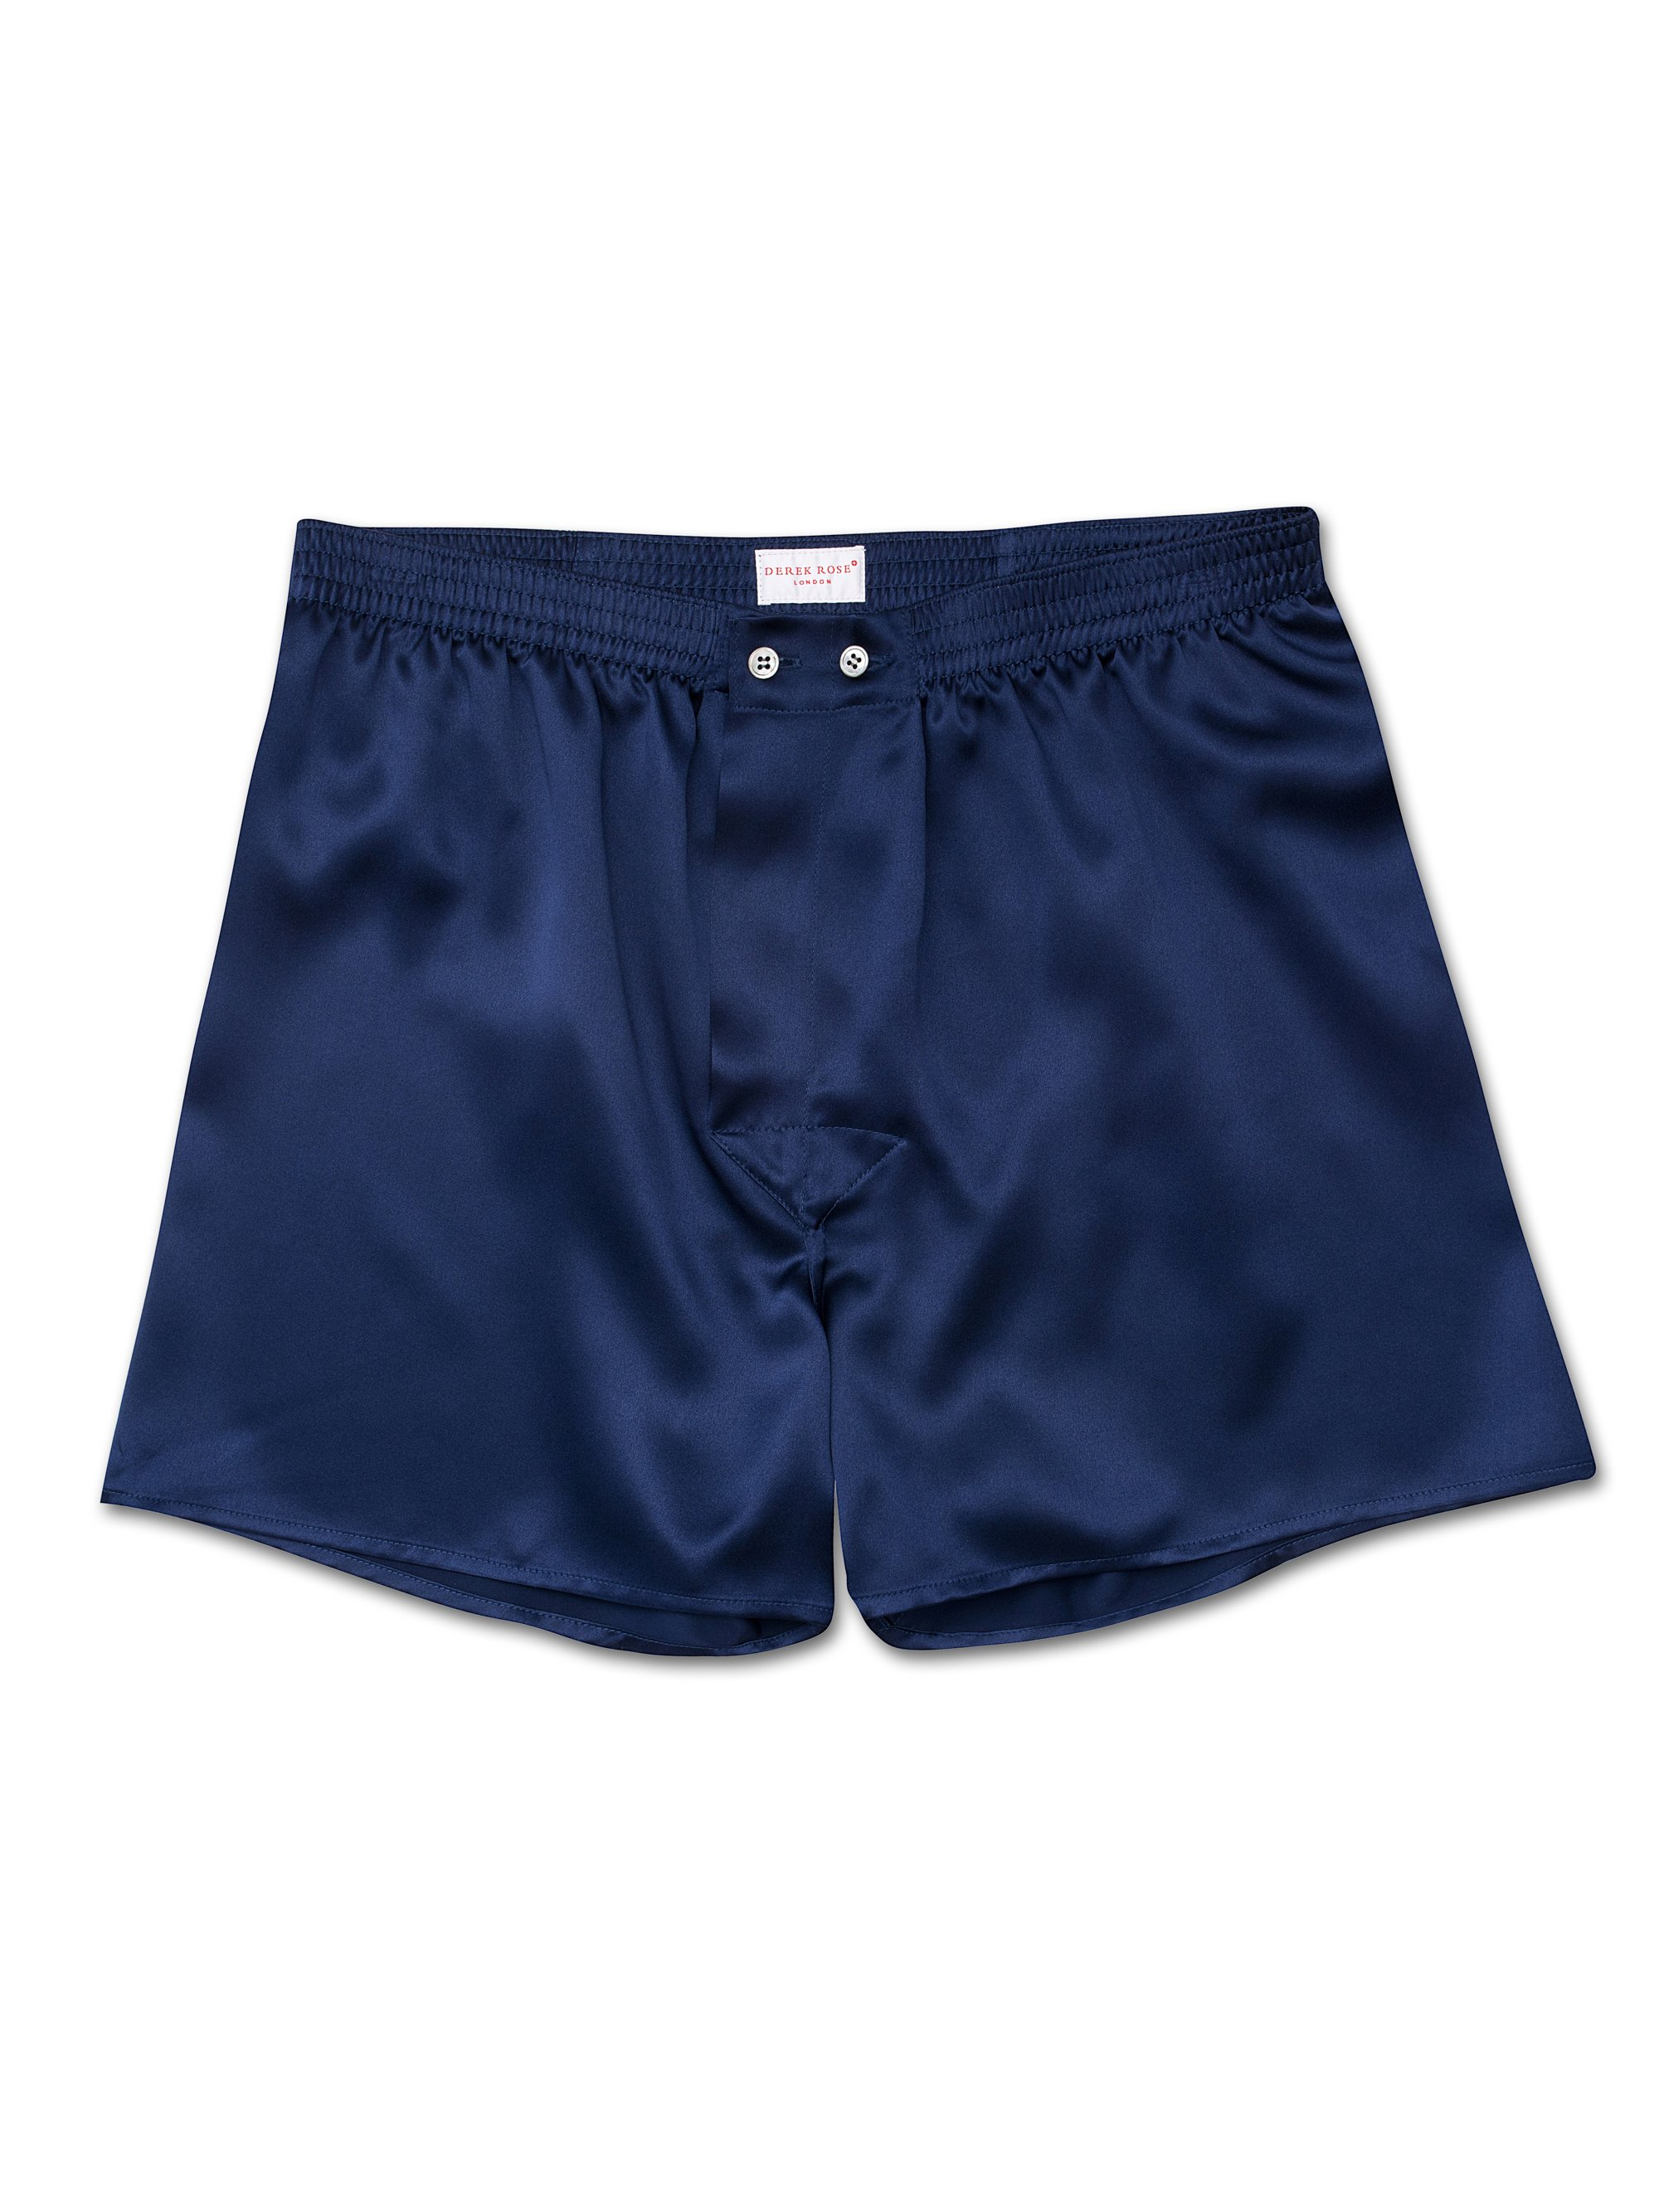 Men's Classic Fit Boxer Shorts Bailey Pure Silk Satin Navy